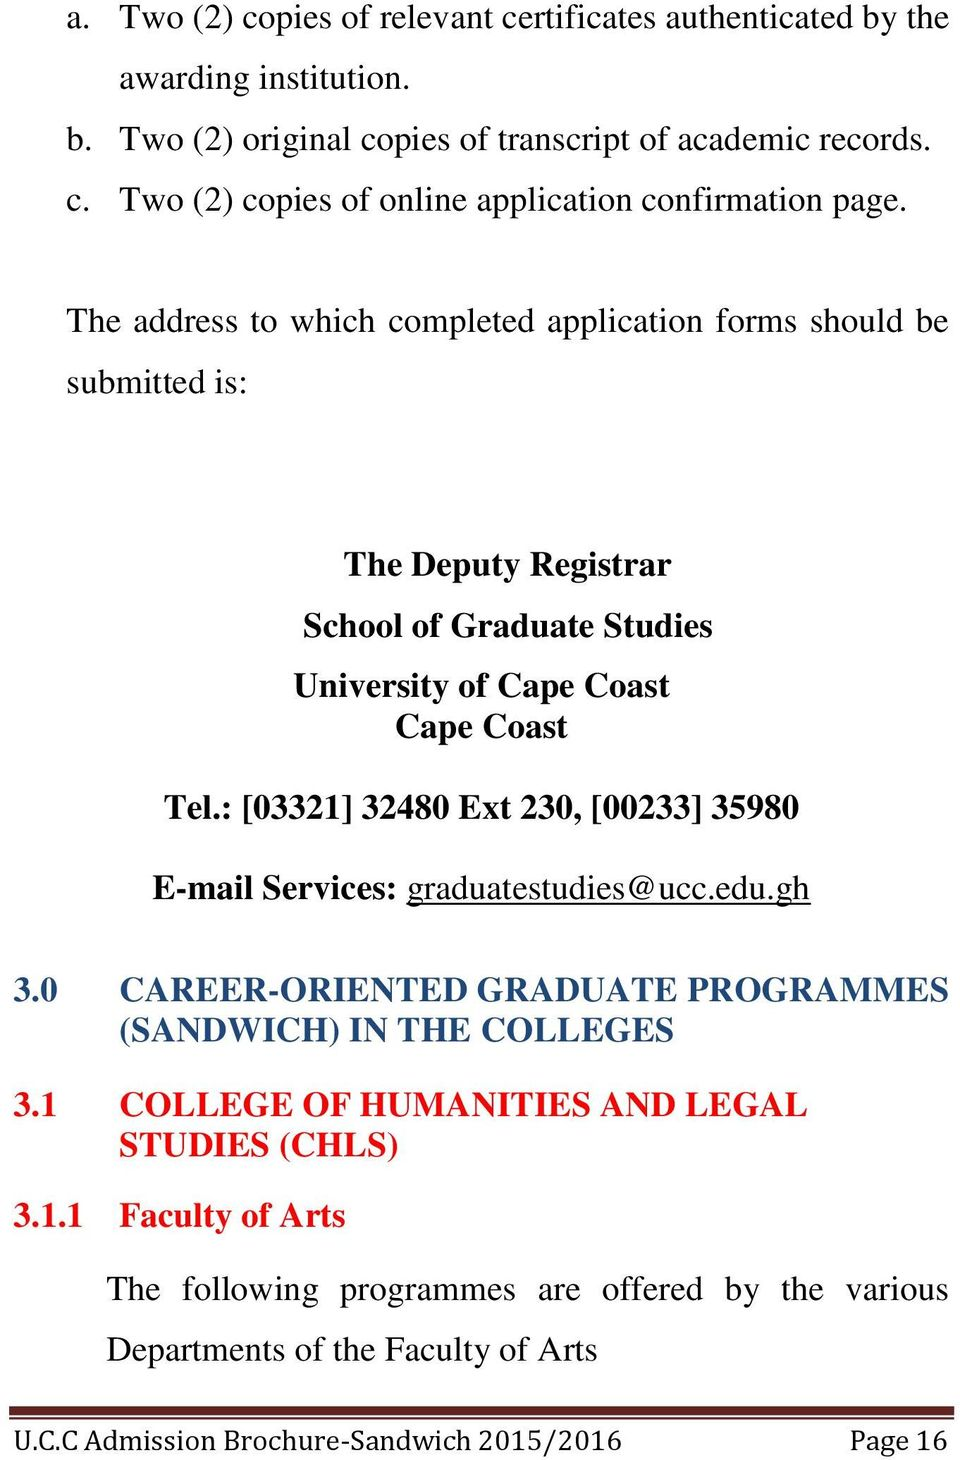 : [03321] 32480 Ext 230, [00233] 35980 E-mail Services: graduatestudies@ucc.edu.gh 3.0 CAREER-ORIENTED GRADUATE PROGRAMMES (SANDWICH) IN THE COLLEGES 3.